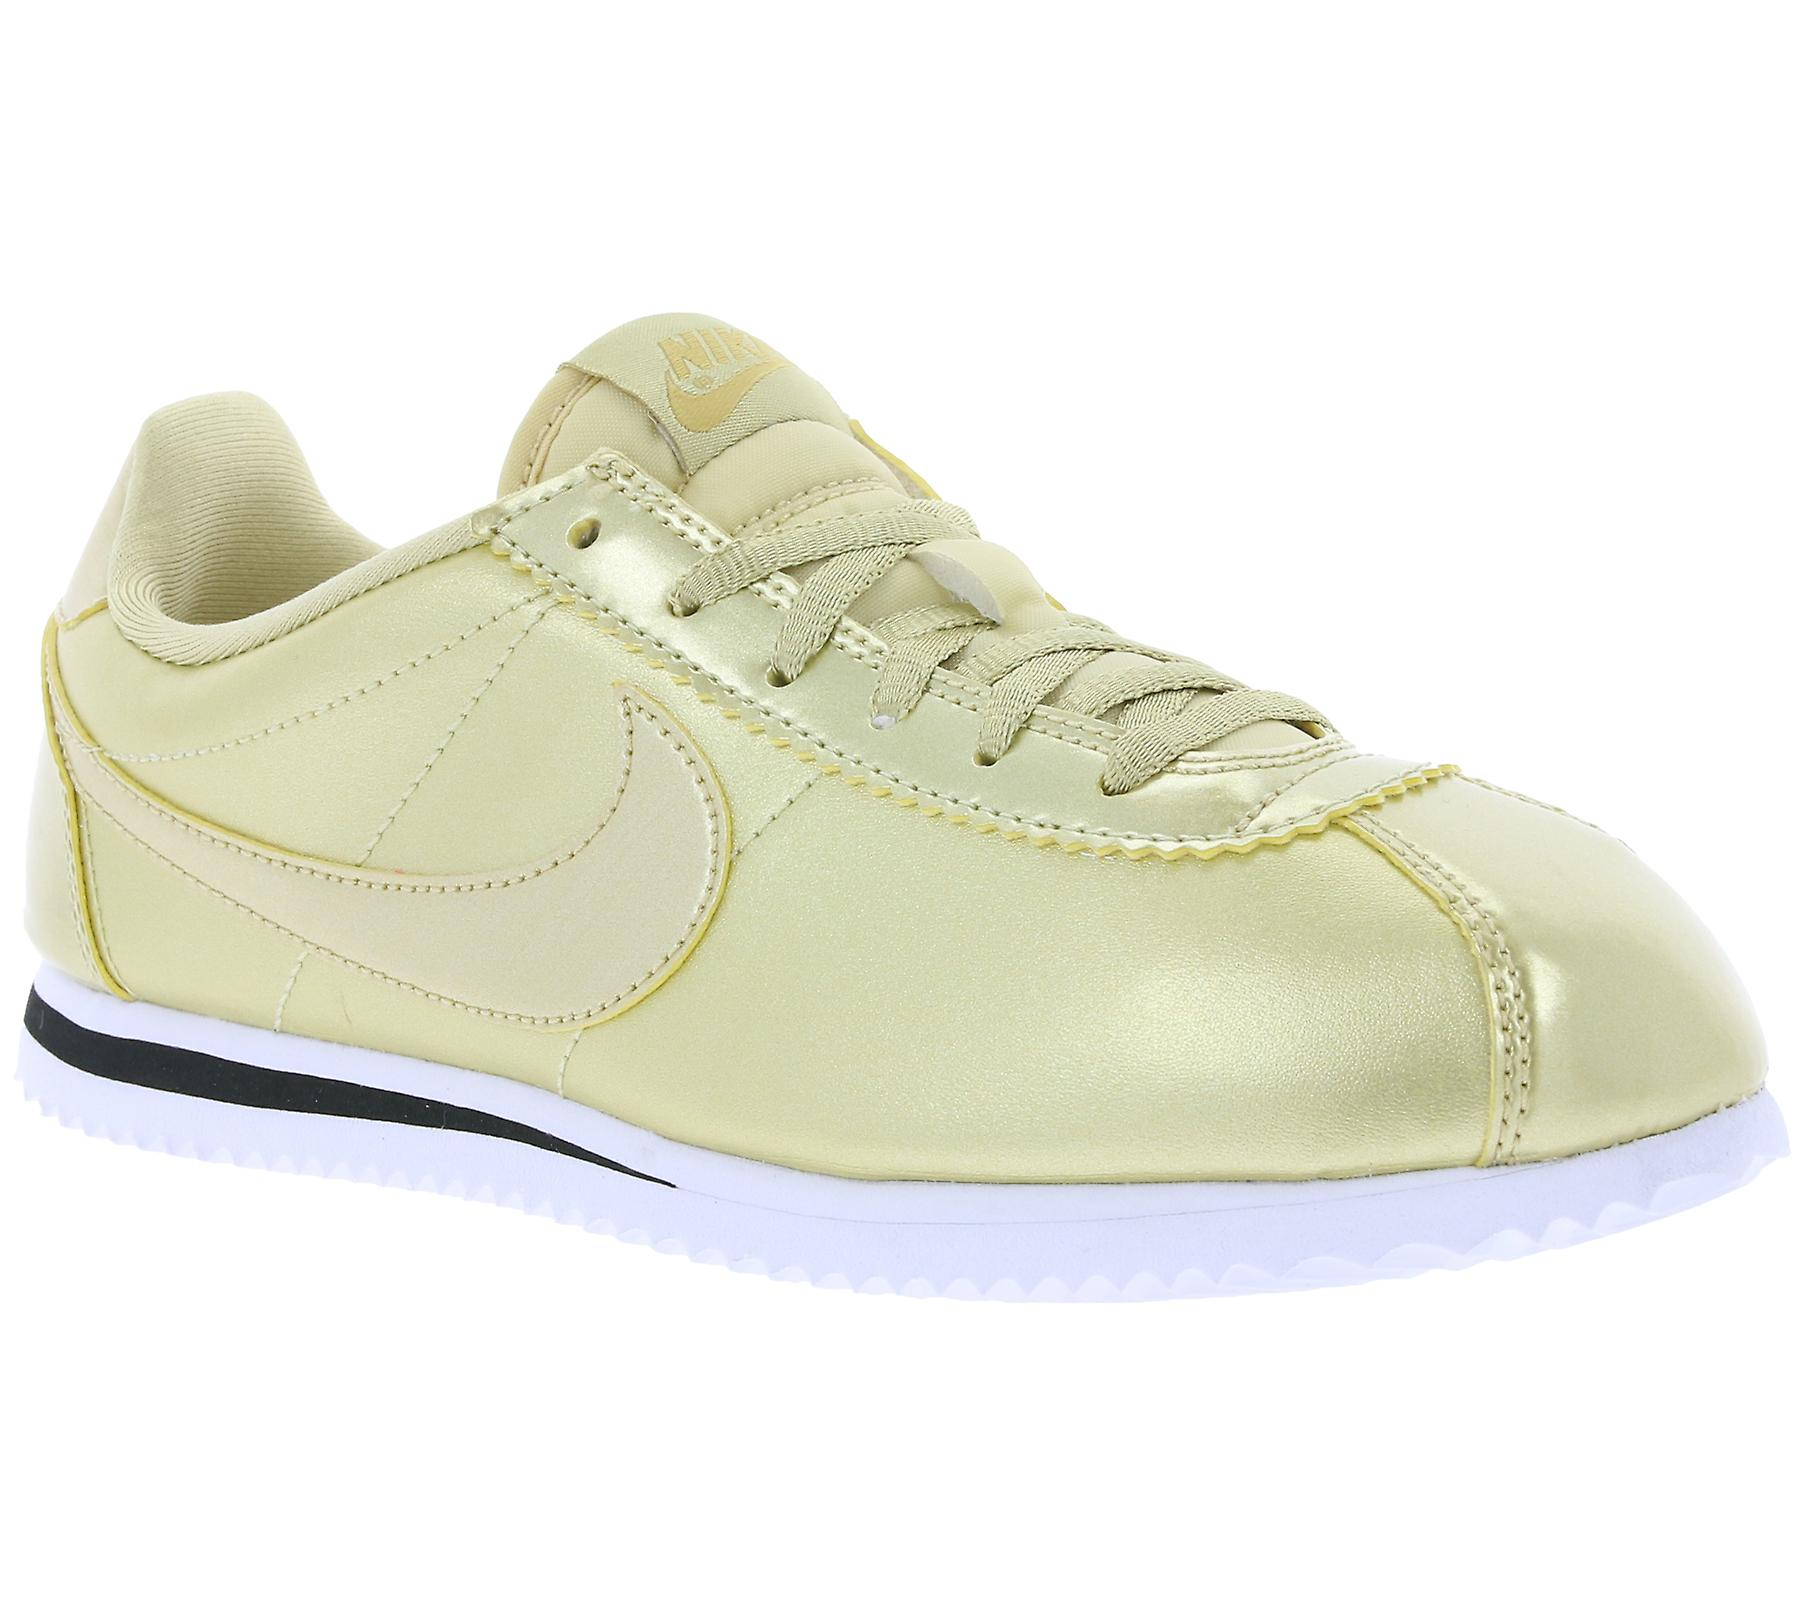 NIKE Cortez Special Edition GS Schuhe Kinder Sneaker Gold 859569 900